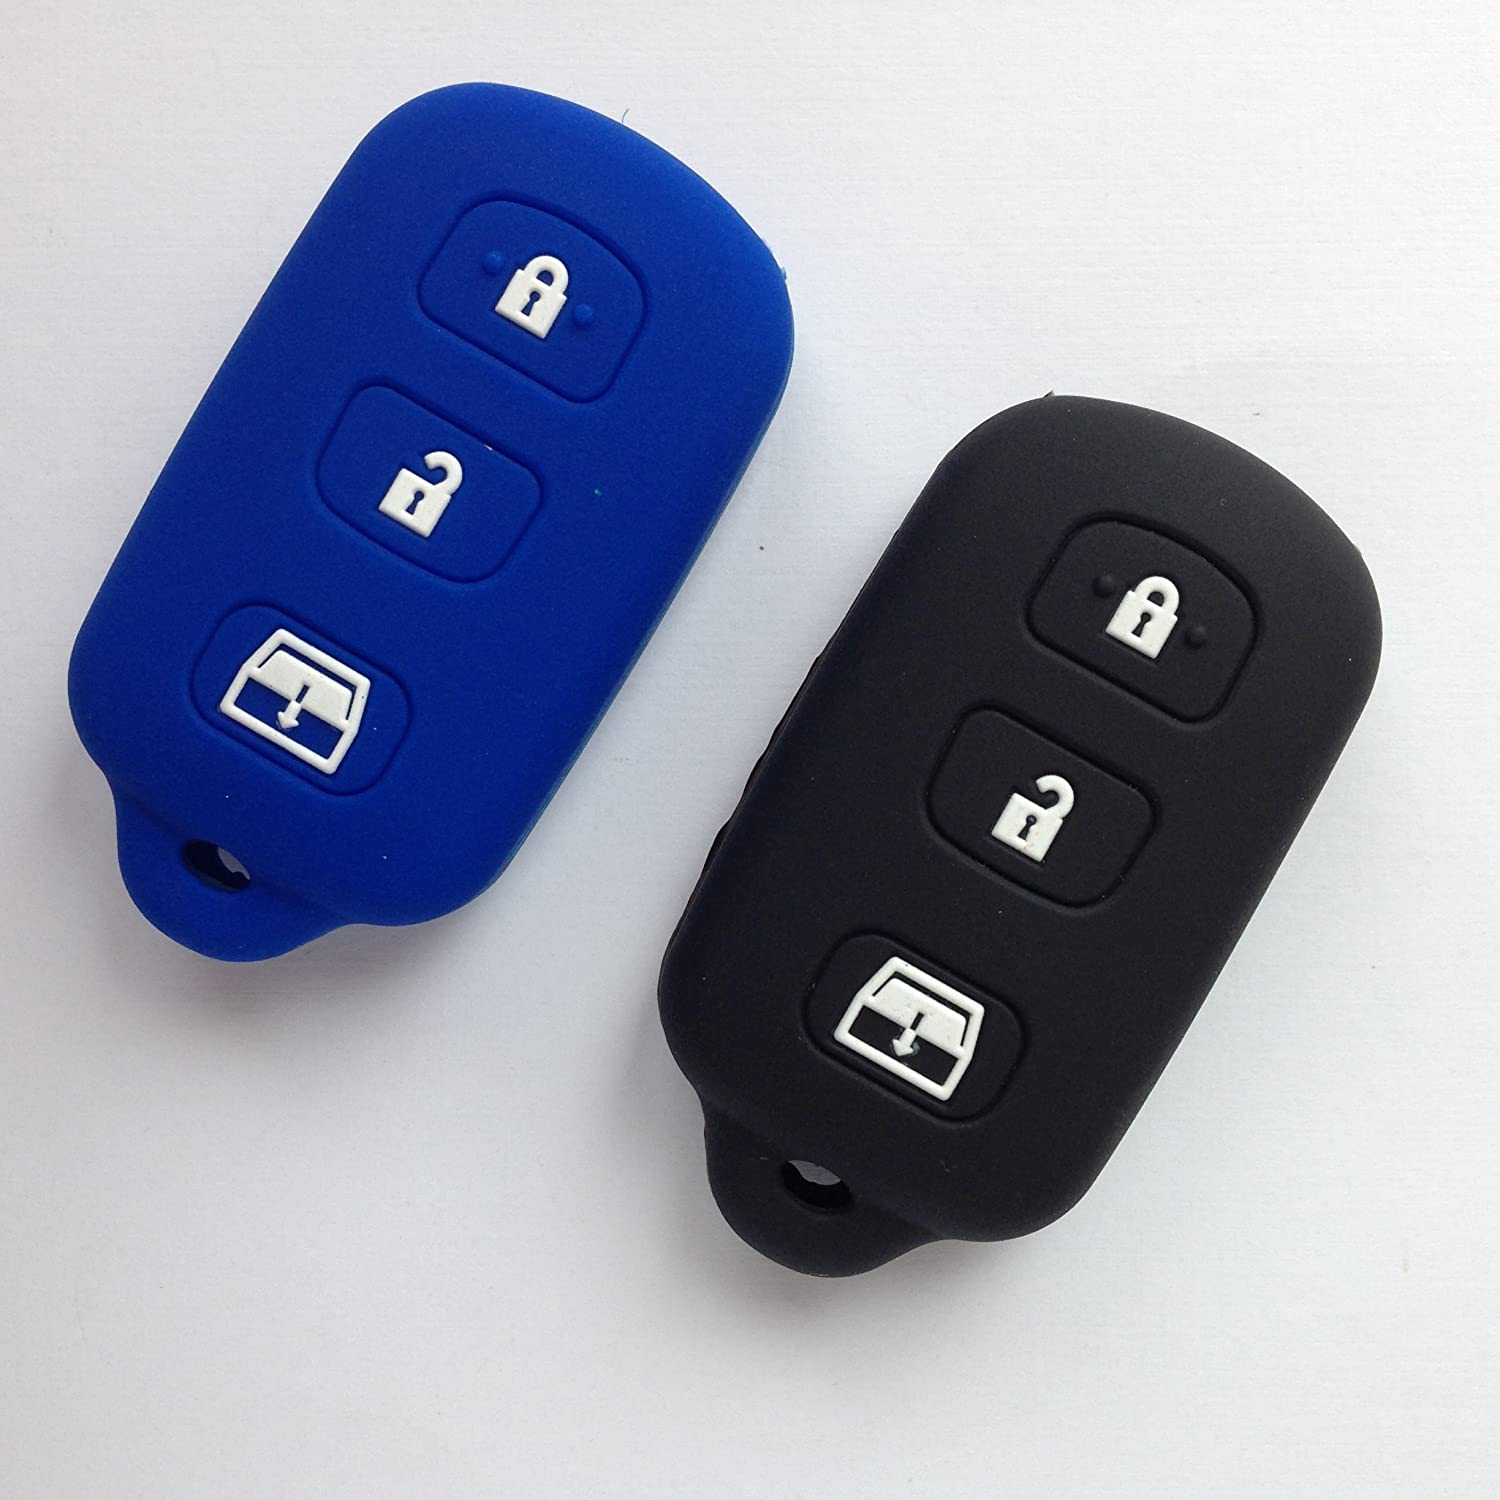 2pcs Fob Skin Key Cover Fit for Toyota 4Runner Sequoia Matrix Remote Key Holder Protector Fob Skin Key Cover Keyless Toyota HYQ12BBX 4 Button Gift